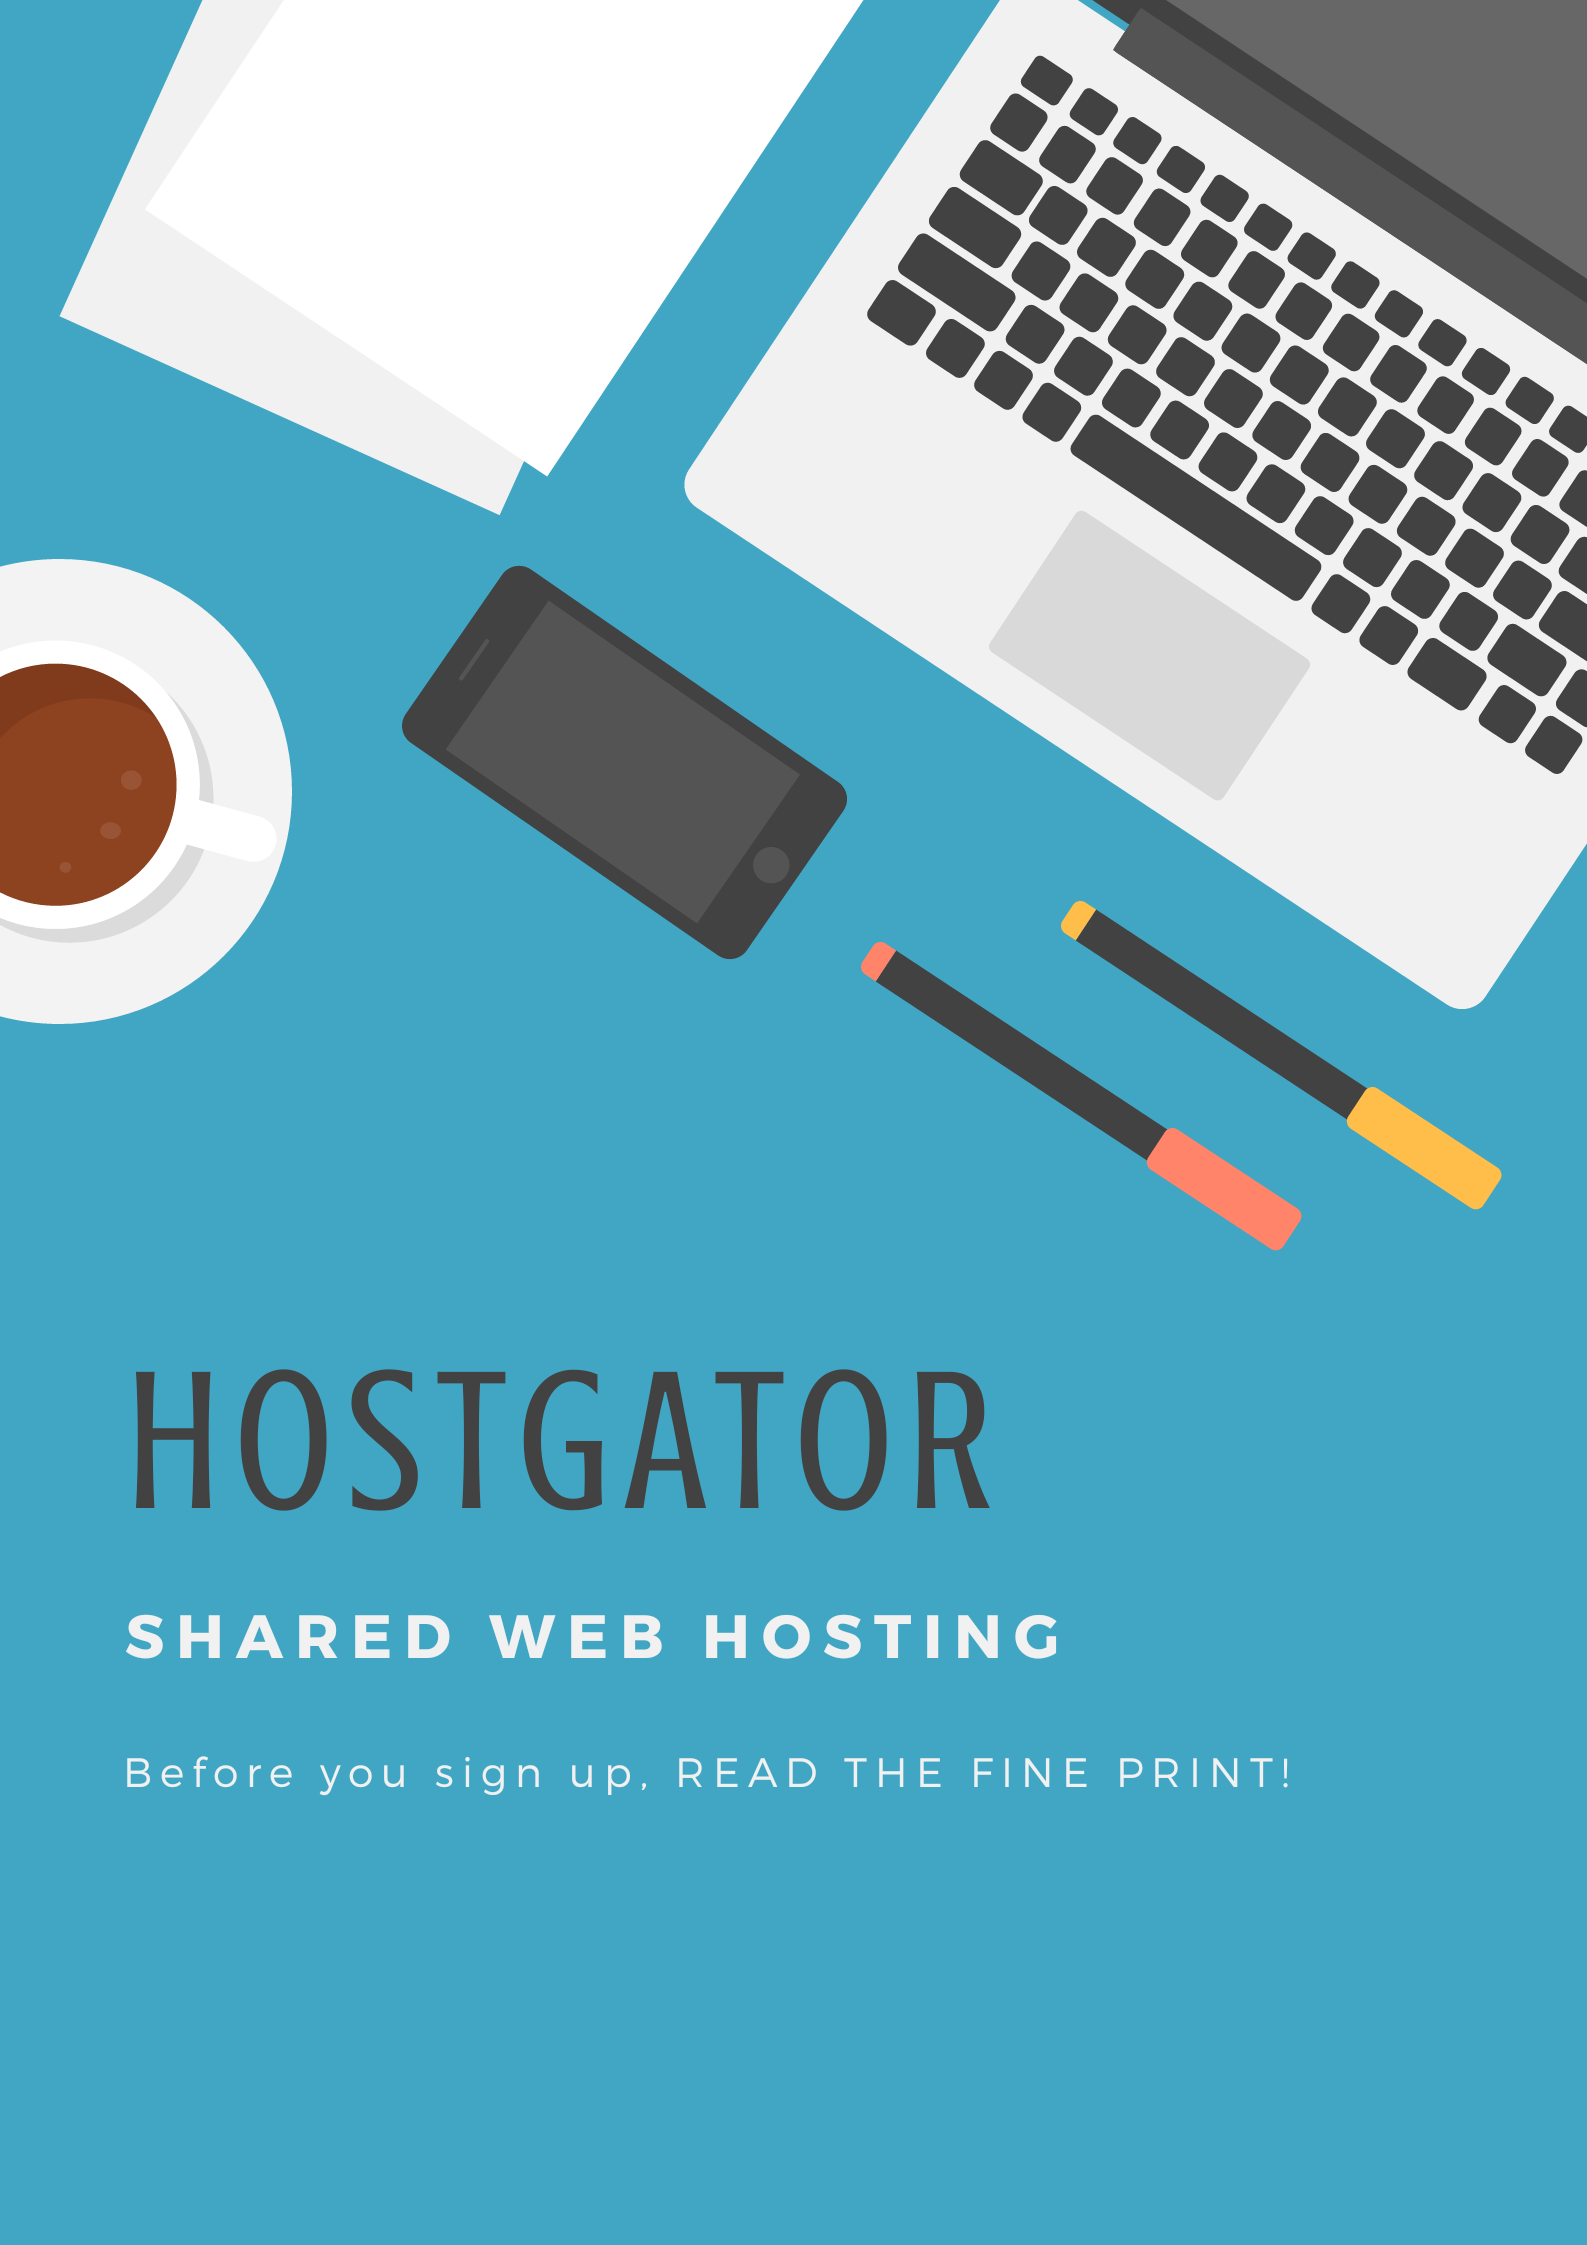 Review of HostGator Web Hosting